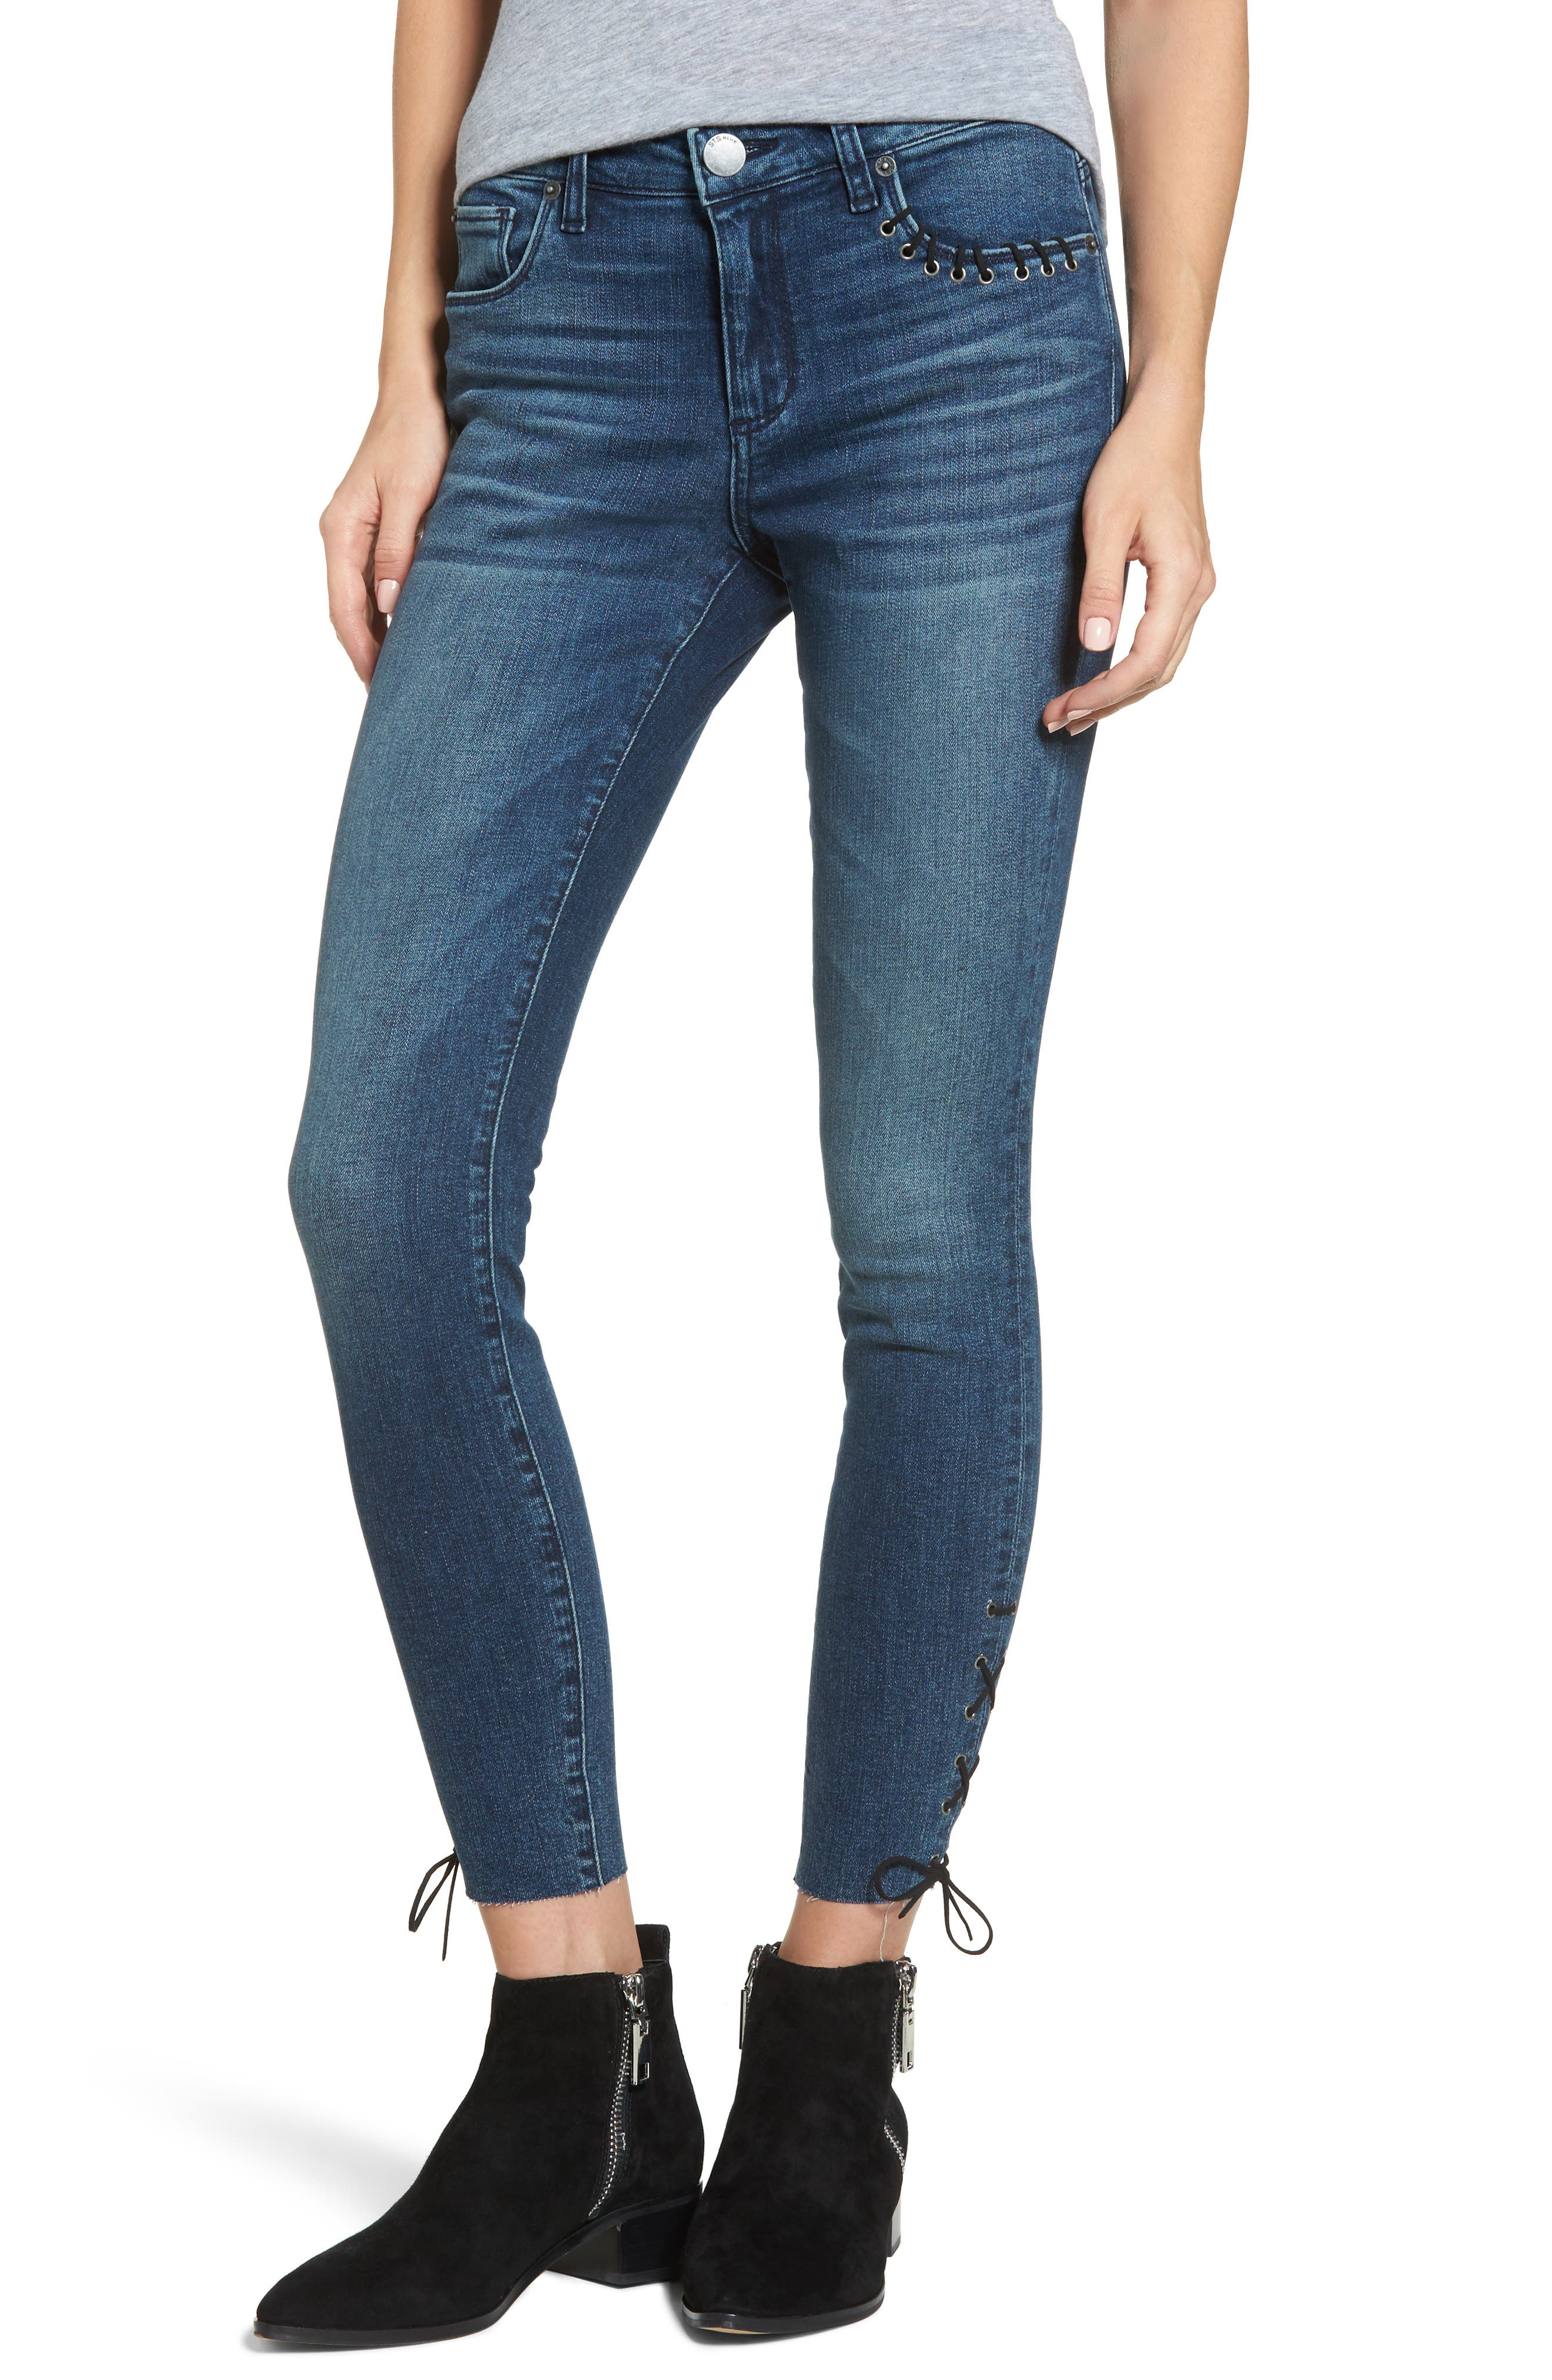 Emma Lace-Up Ankle Skinny Jeans,                             Main thumbnail 1, color,                             400